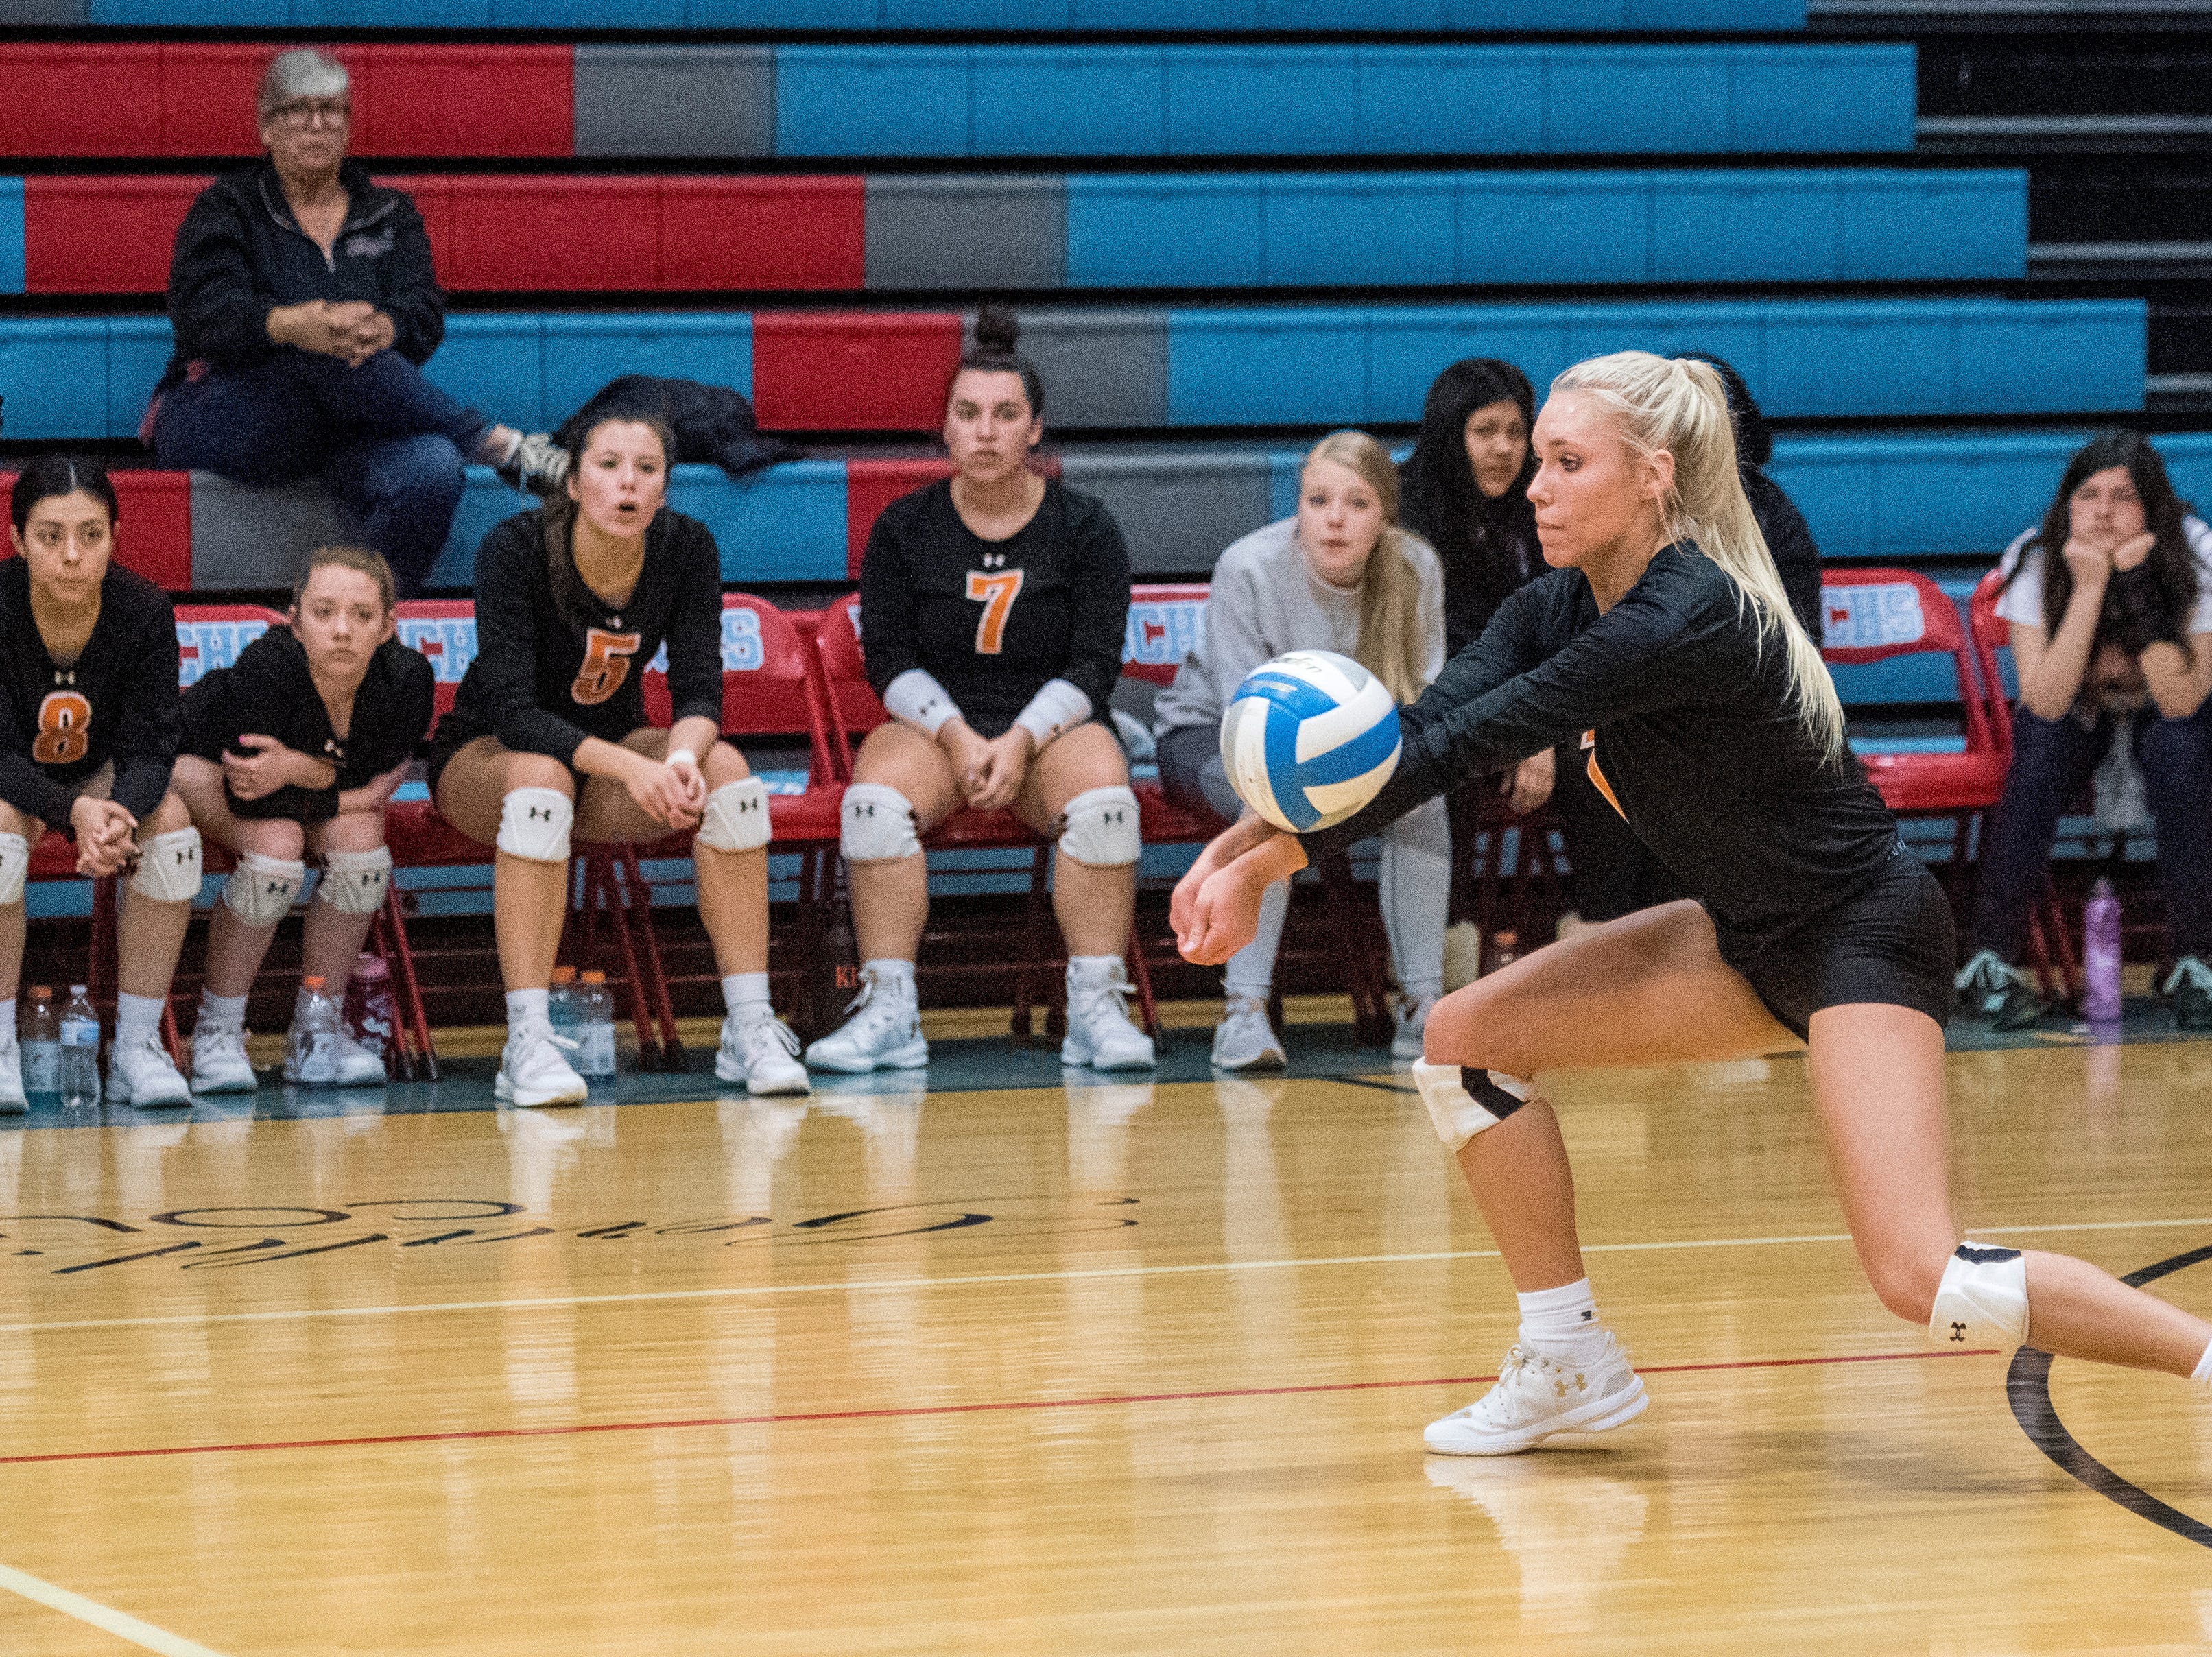 Hopkinsville's Sarah Cavanah (1) sets the ball during the Second Region Tournament game against the Henderson County Lady Colonels in Morganfield Tuesday, Oct. 16, 2018. Henderson beat Hopkinsville, 3-1.